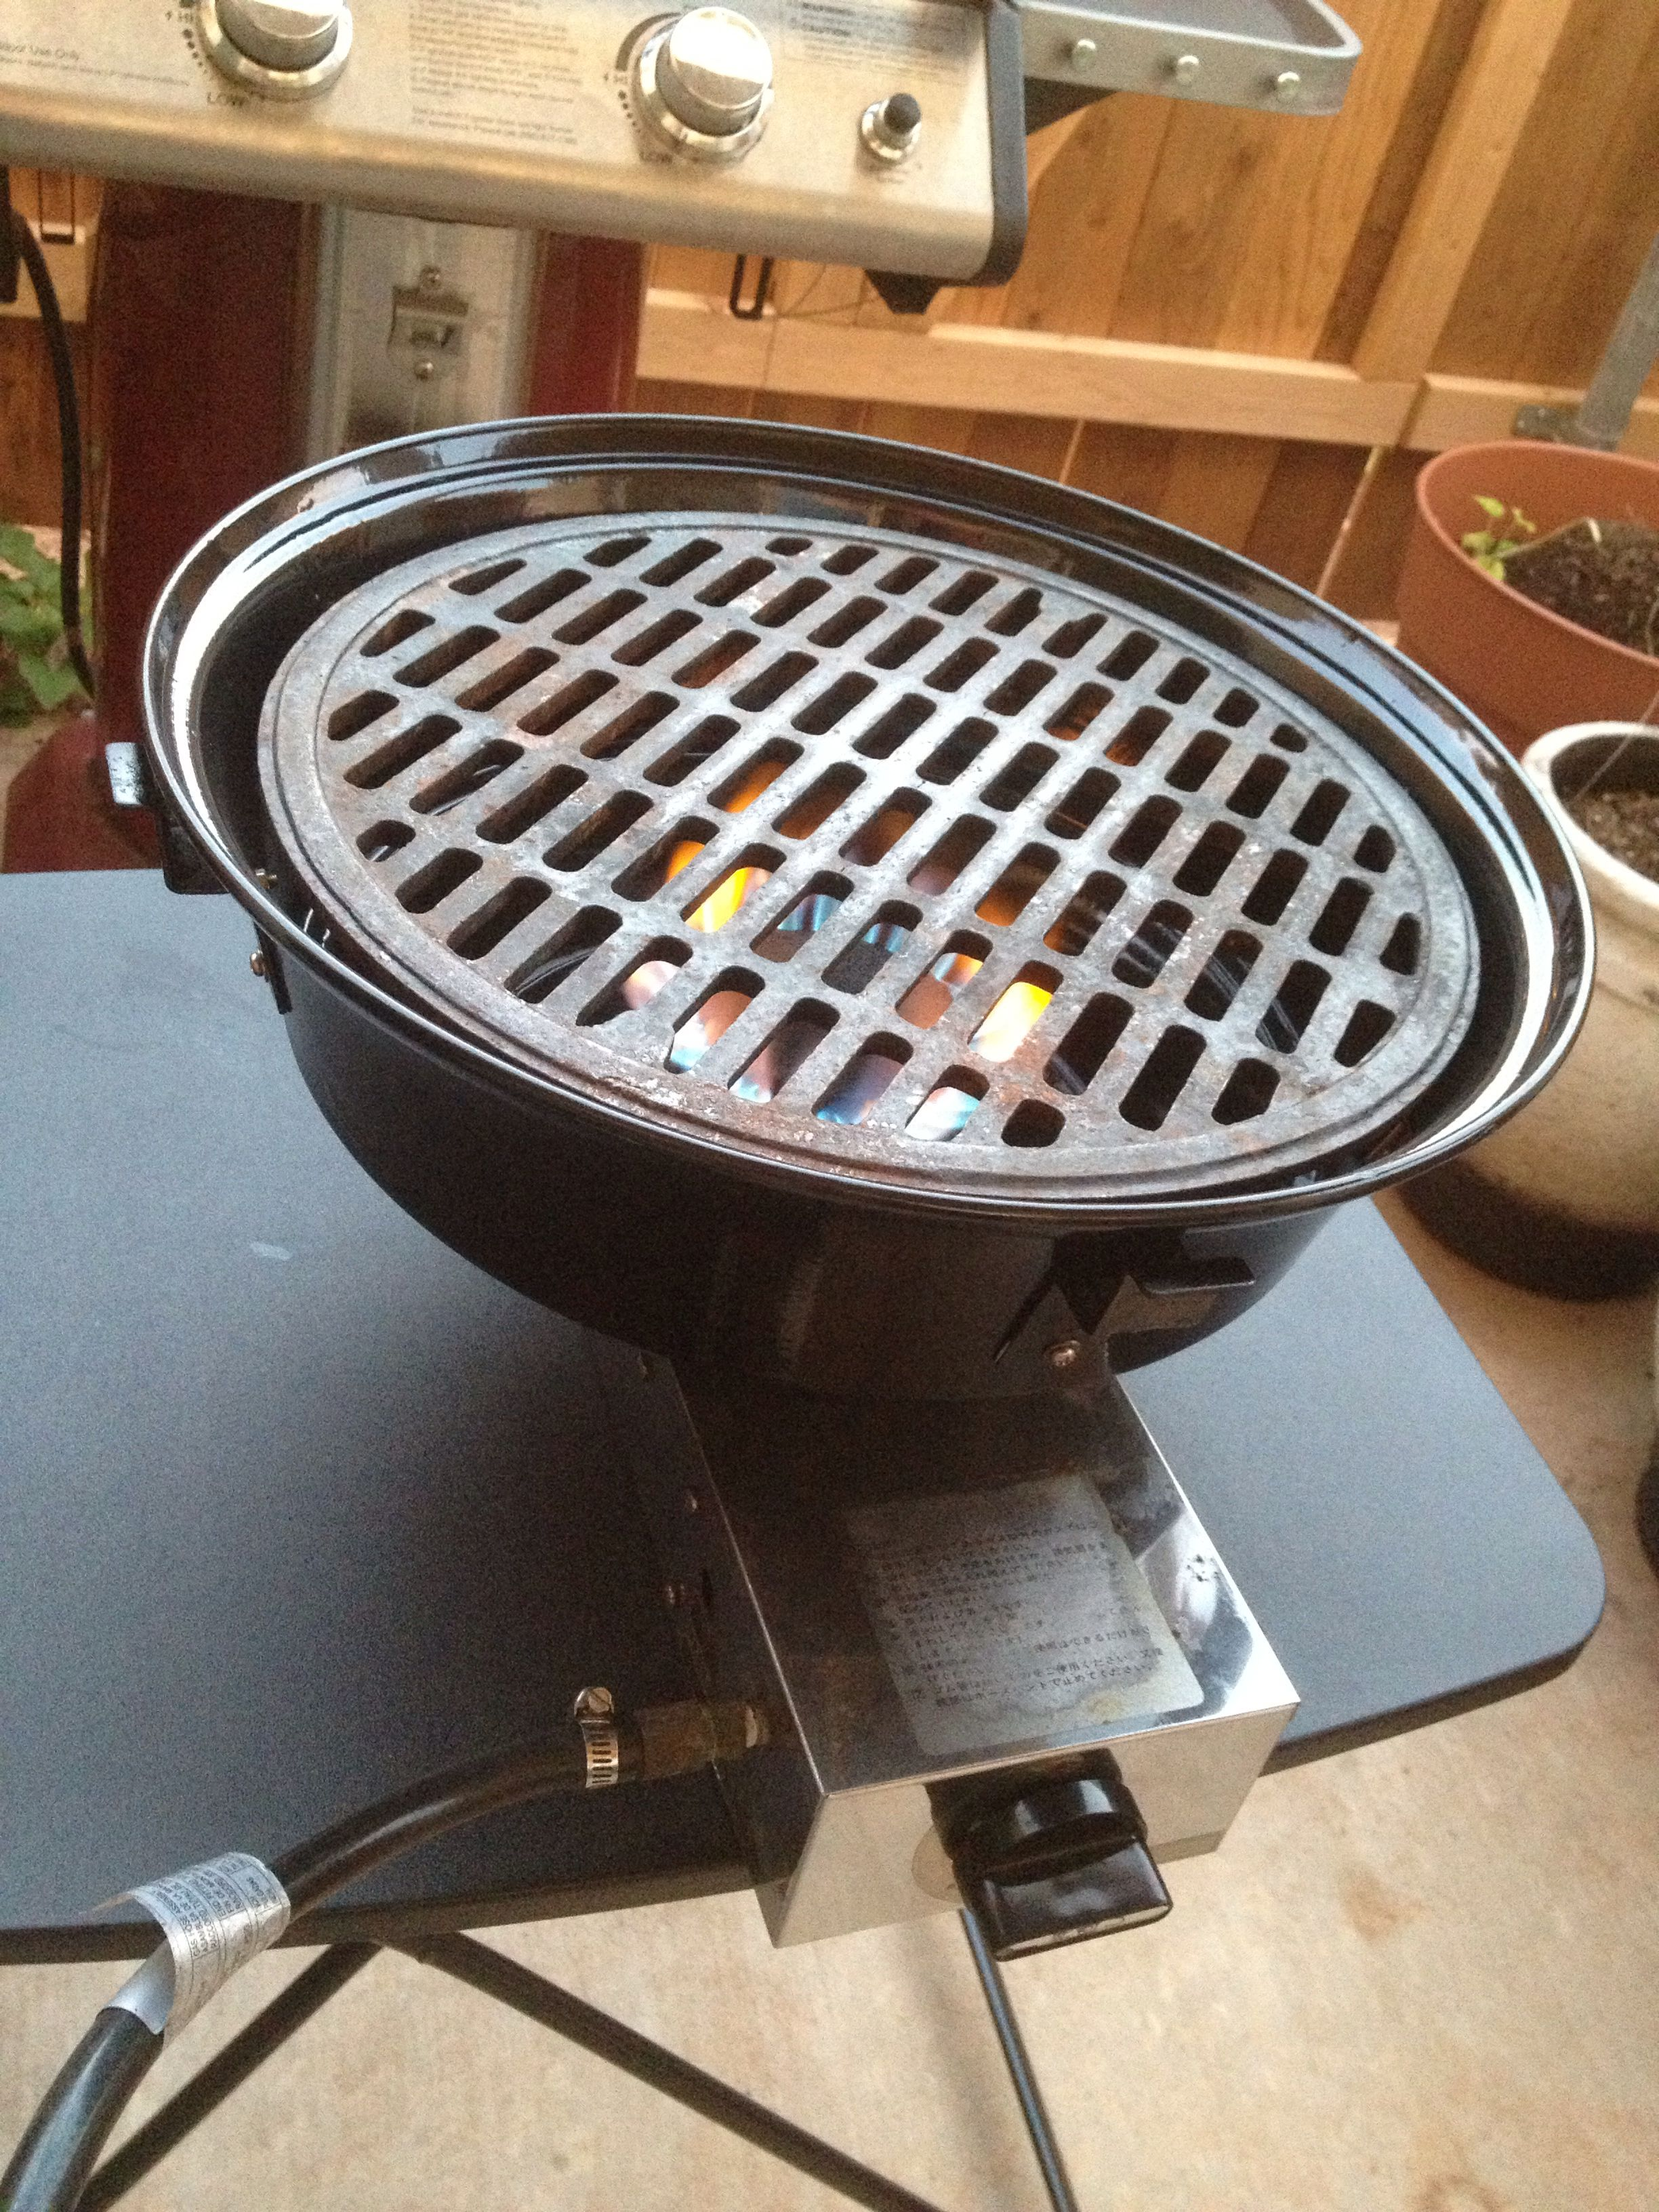 In Table Gas Grill Repainted Scrubbed And Waiting For A Table To Go In I Love Yakiniku